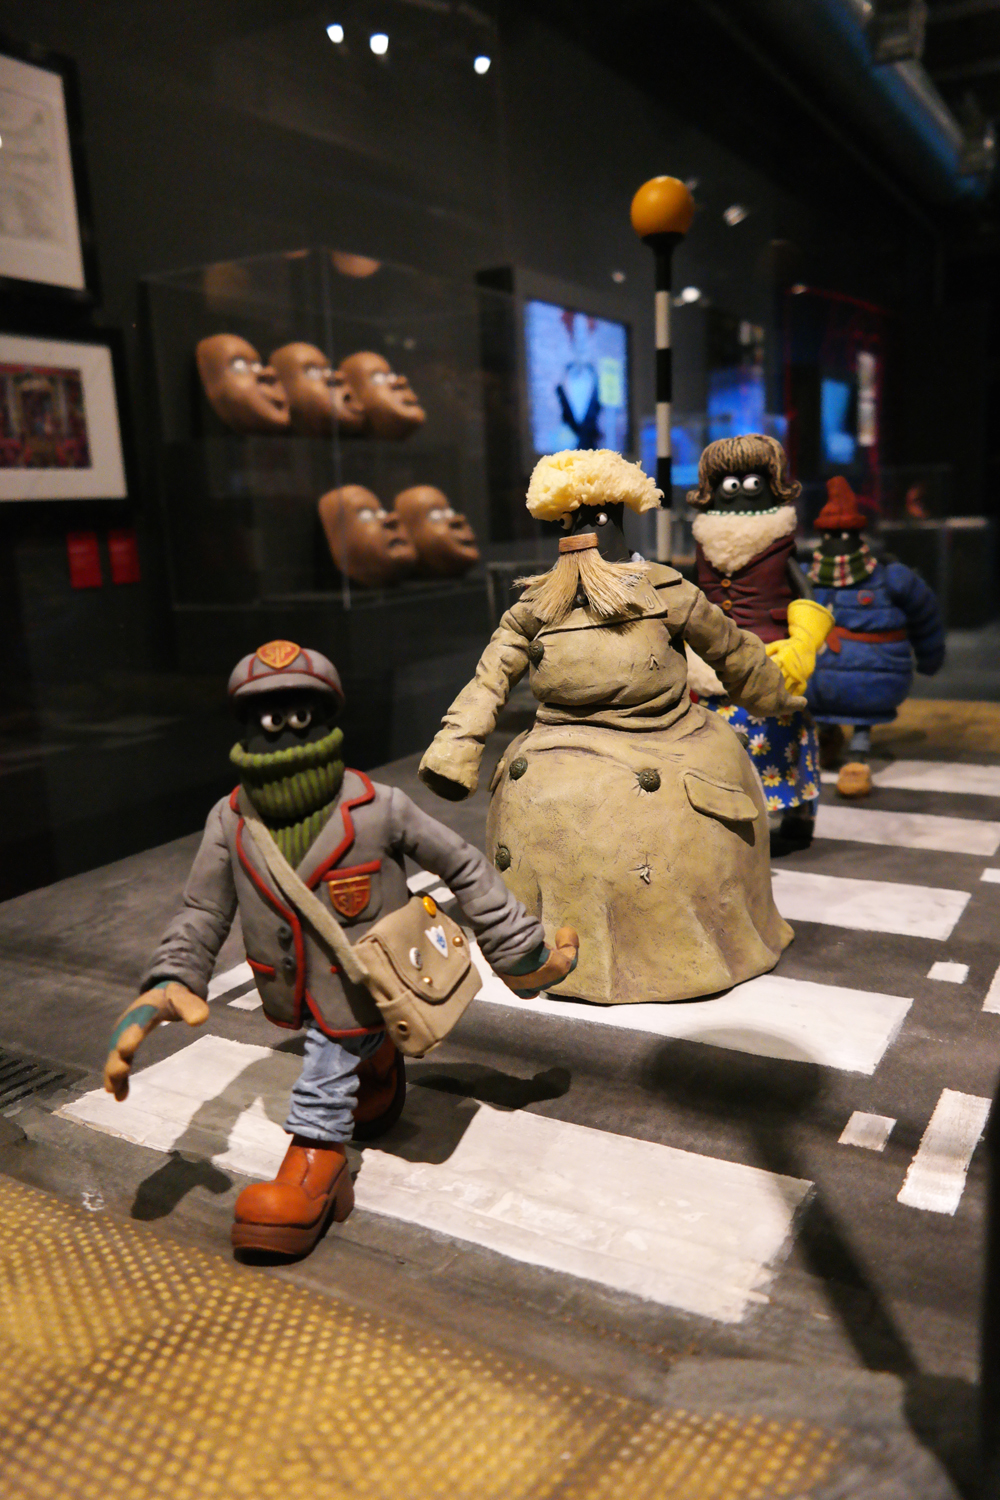 Exposition-Aardman-Animations-Abbey-Road-animation-set-original-props-and-puppets-Shaun-le-mouton-le-film-Shaun-the-sheep-the-movie-2015-Art-Ludique-le-Musée-Paris